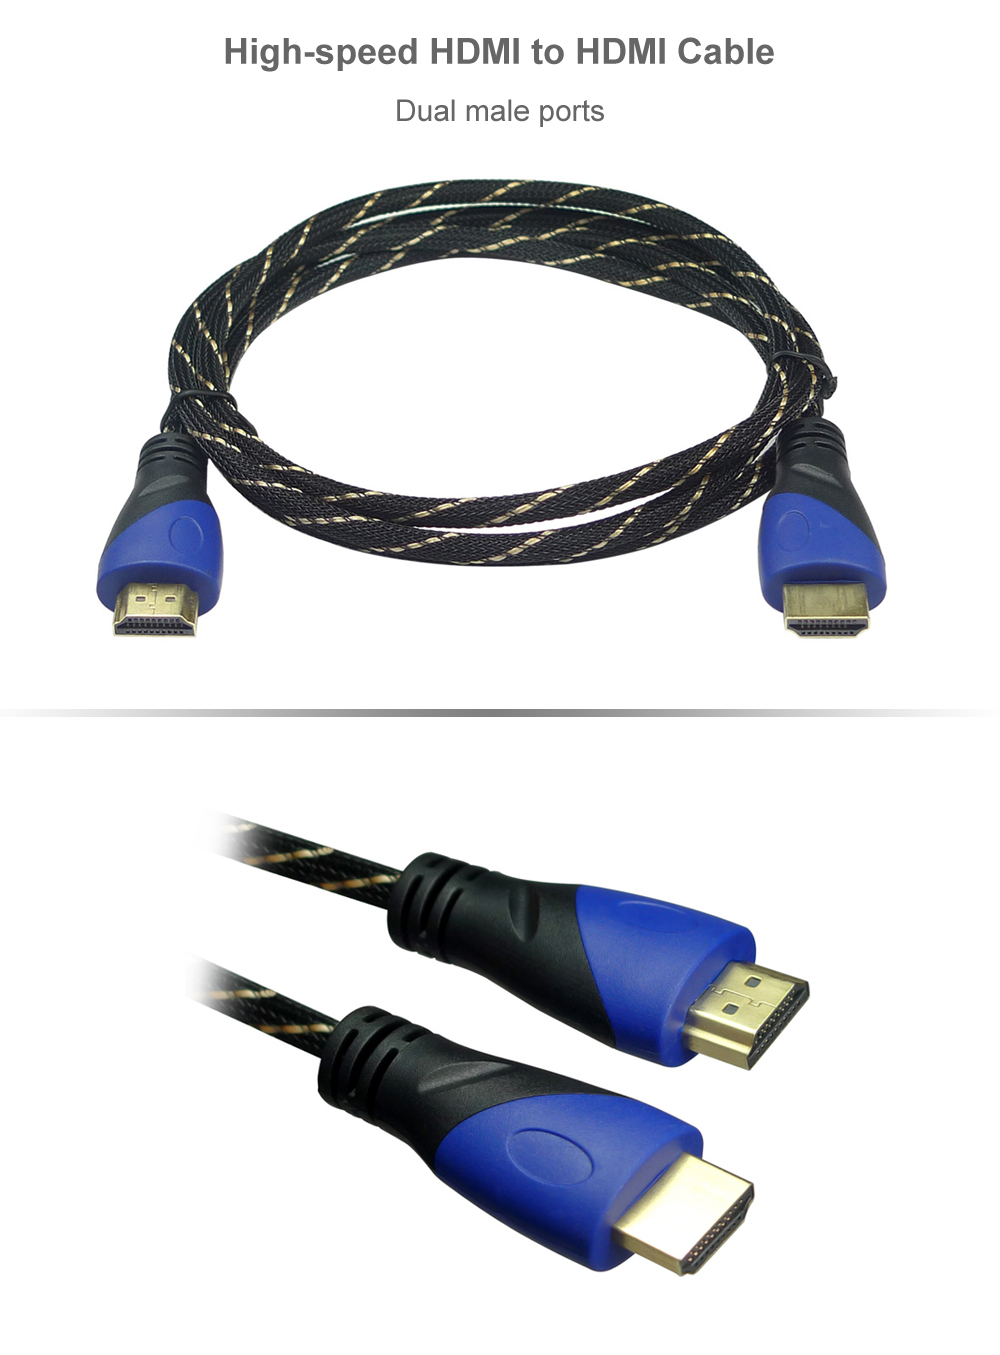 1m High-speed HDMI to HDMI Cable Dual Male Port